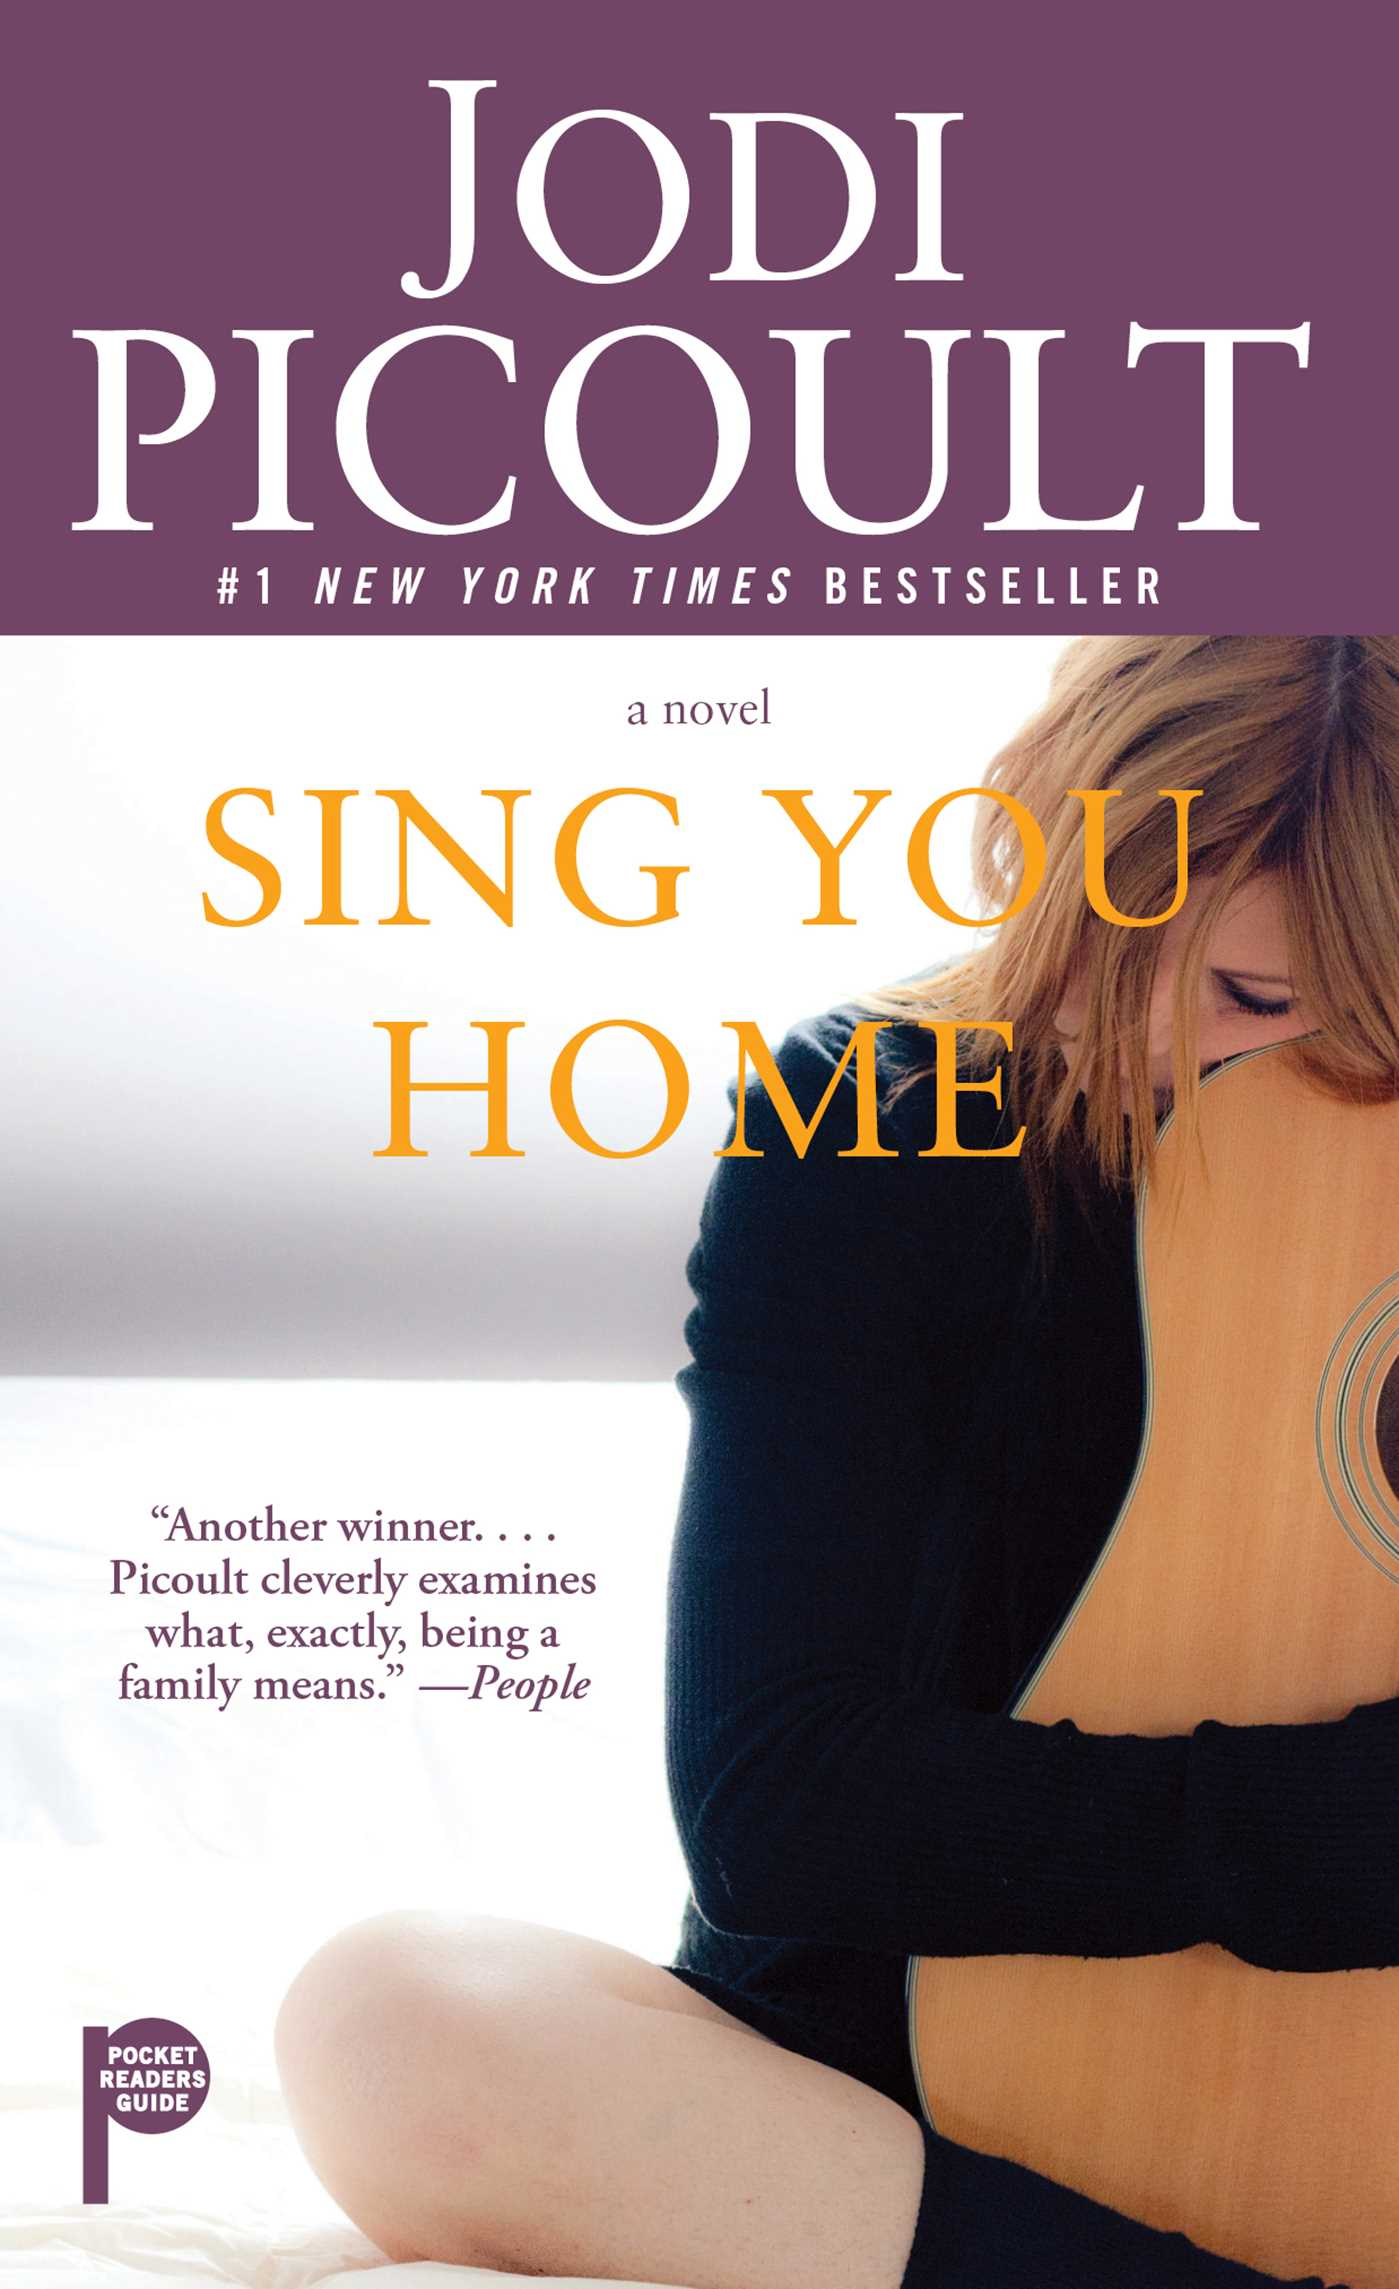 Sing-you-home-9781476776873_hr